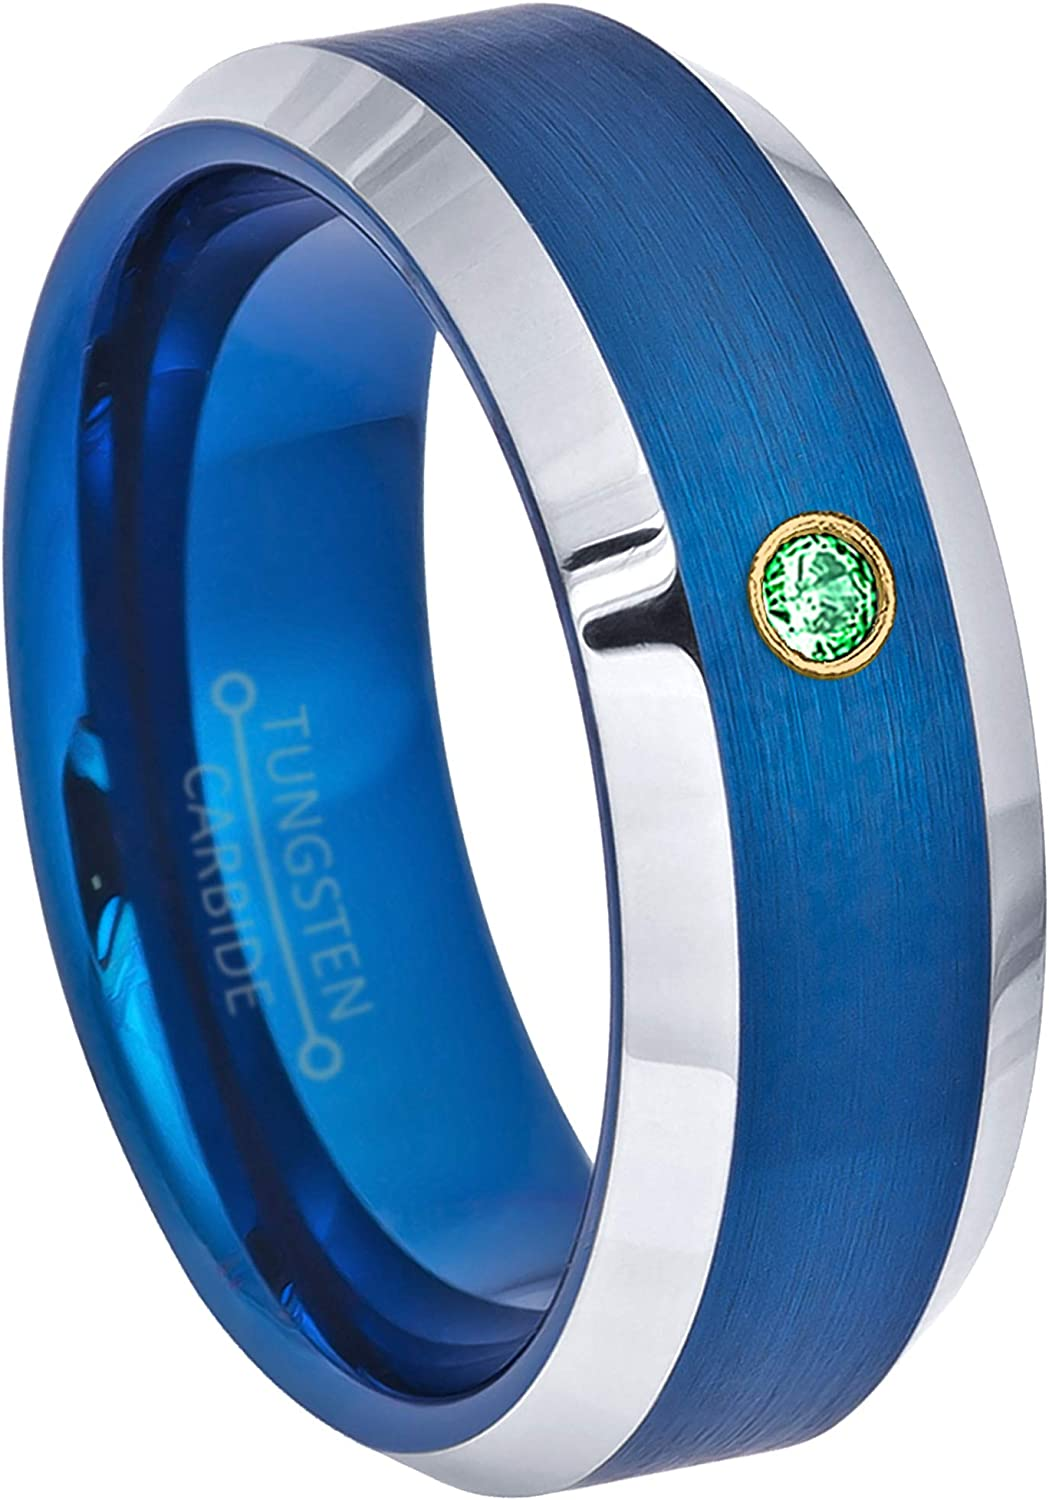 January Birthstone Ring Comfort Fit Tungsten Wedding Band 0.07ct Tsavorite Garnet Solitaire Ring 8mm Brushed Finish Blue Tungsten Ring